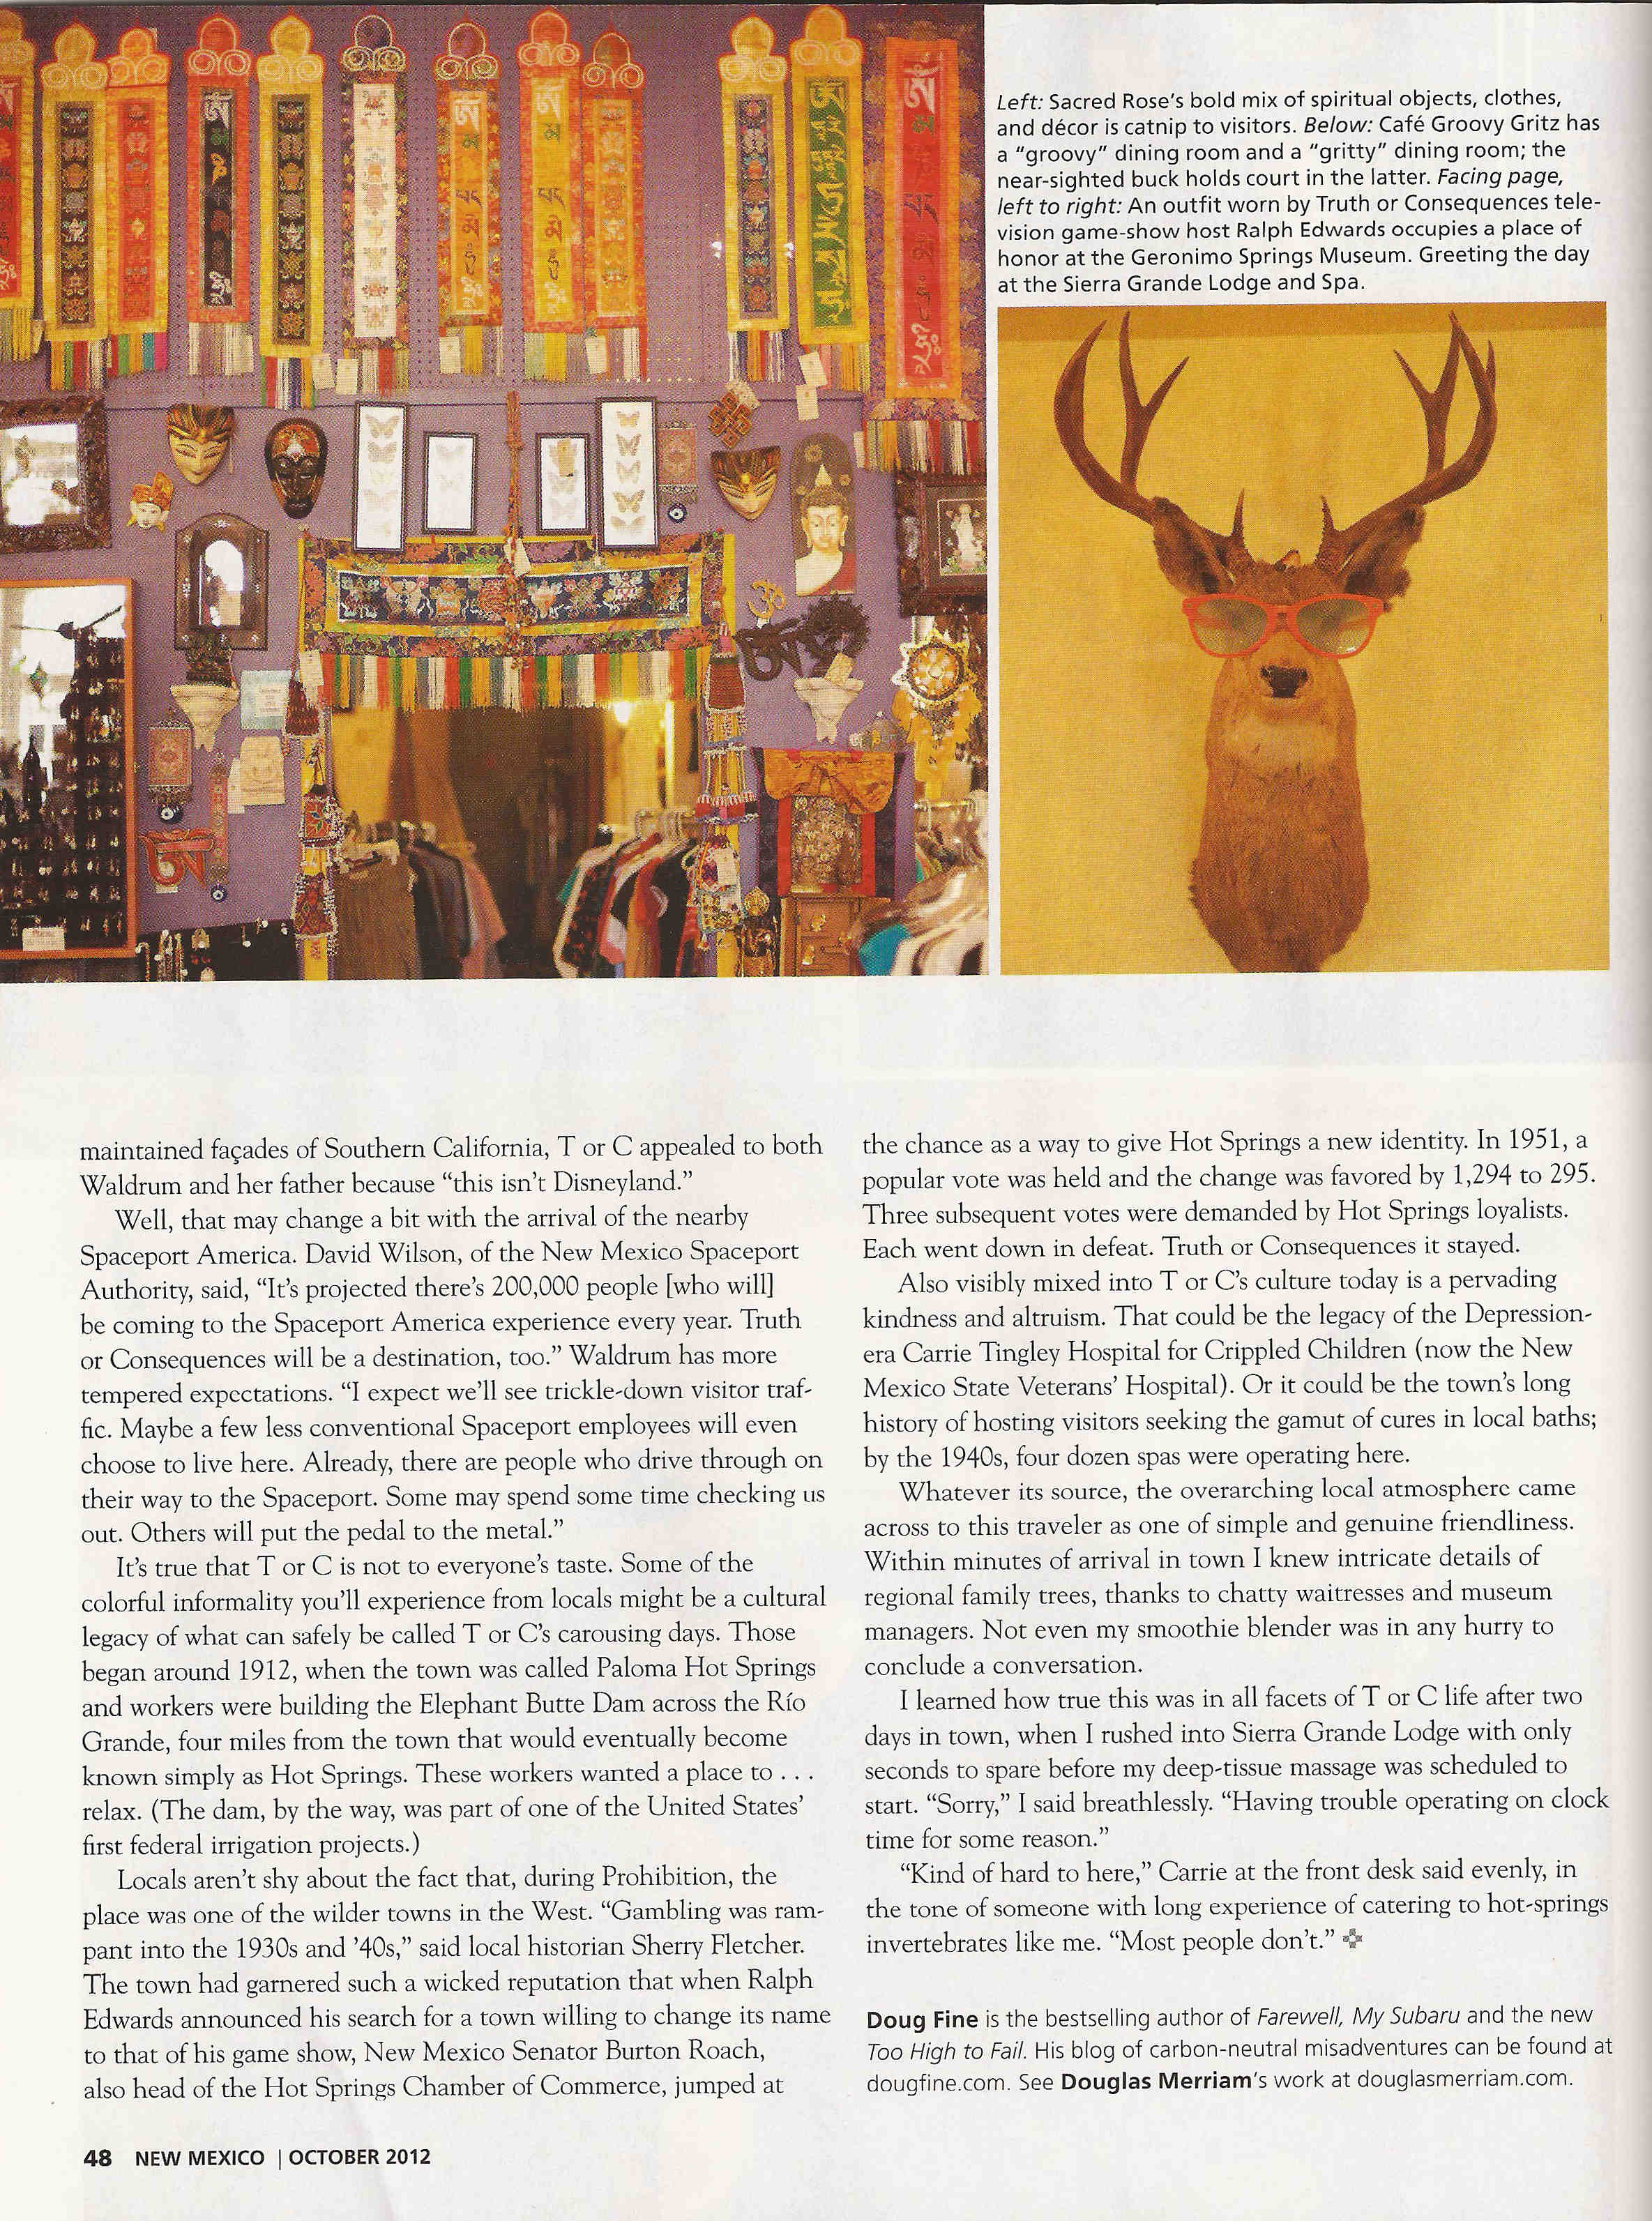 Truth or Consequences in New Mexico Magazine October 2012